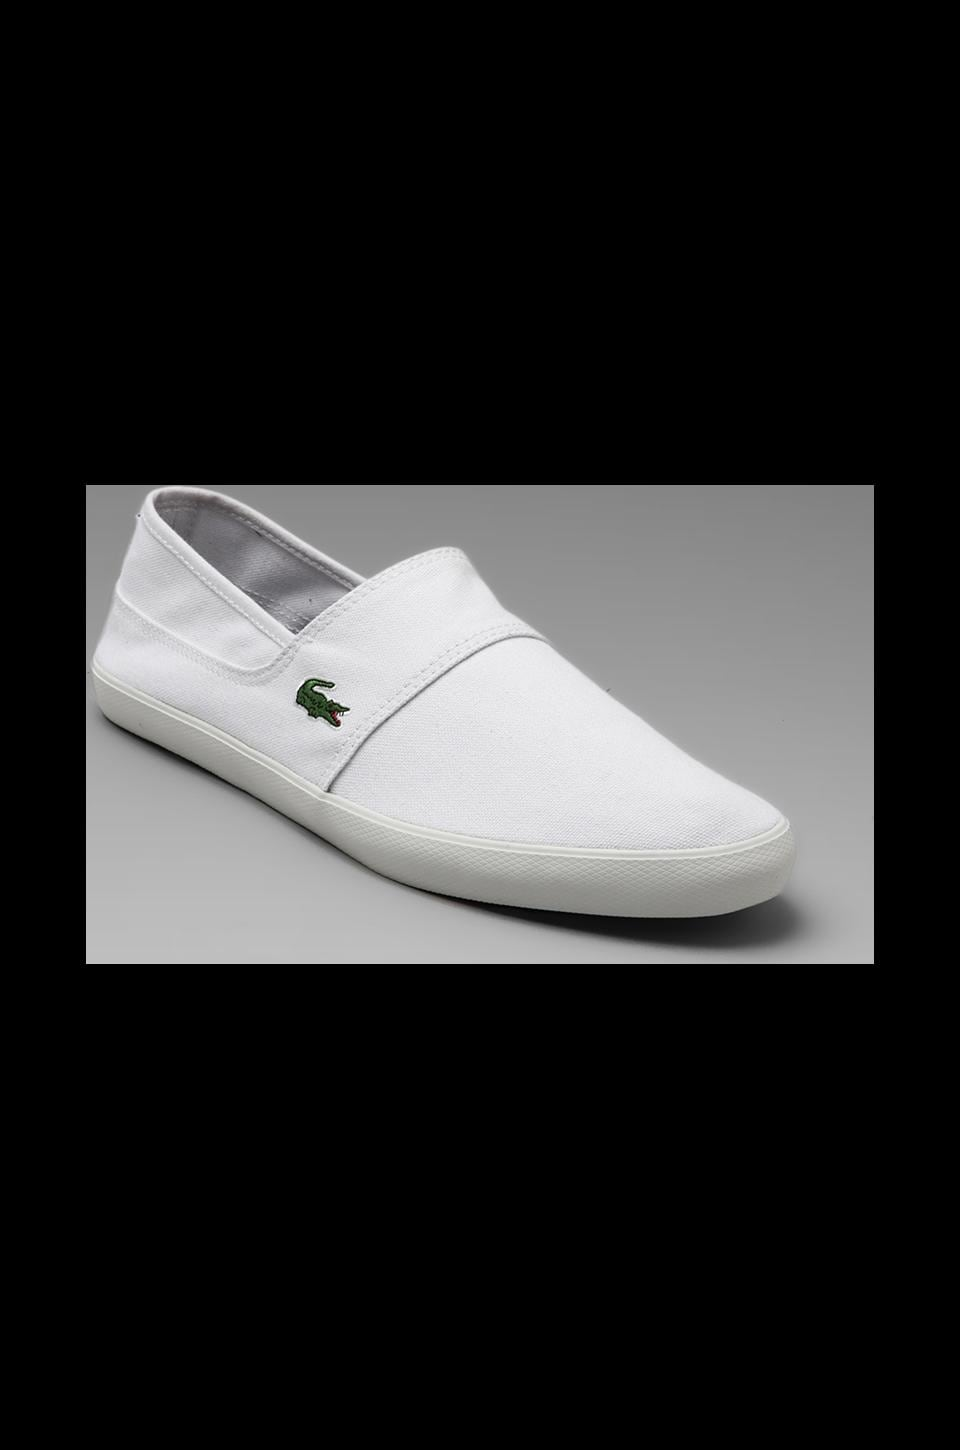 Lacoste Clemente in White/Dark Blue